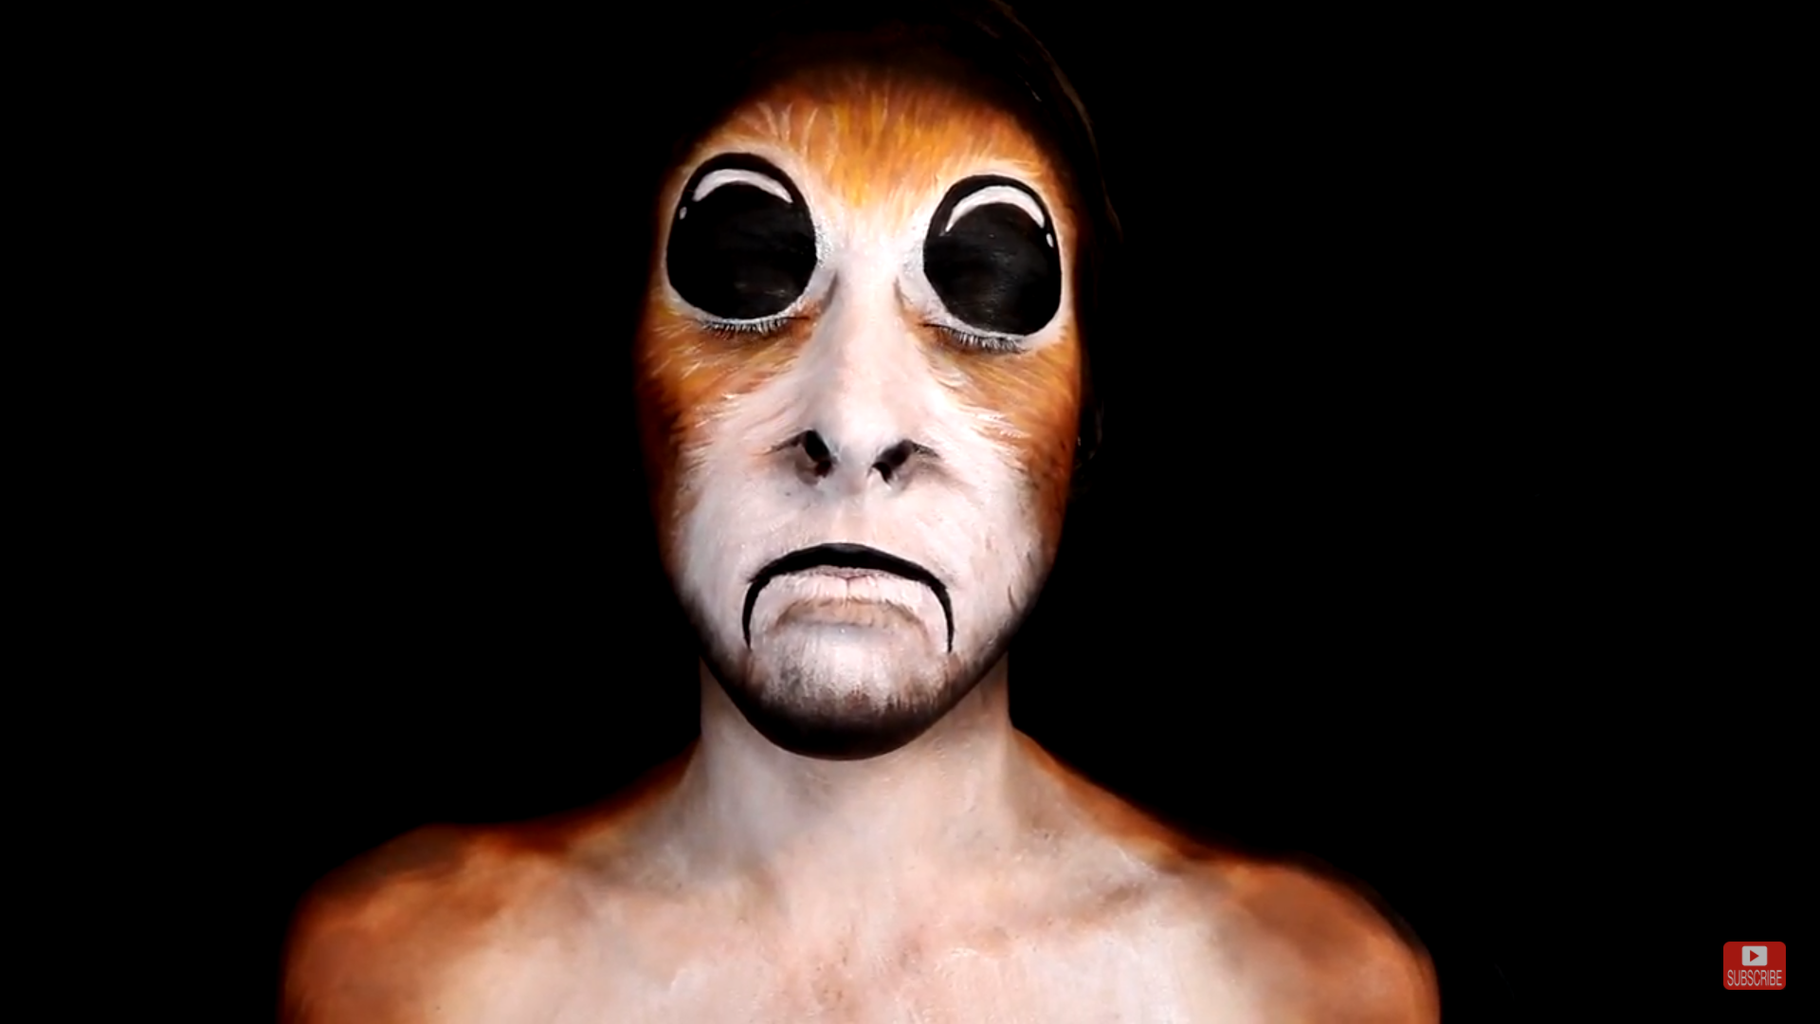 Porg Makeup From StarWars